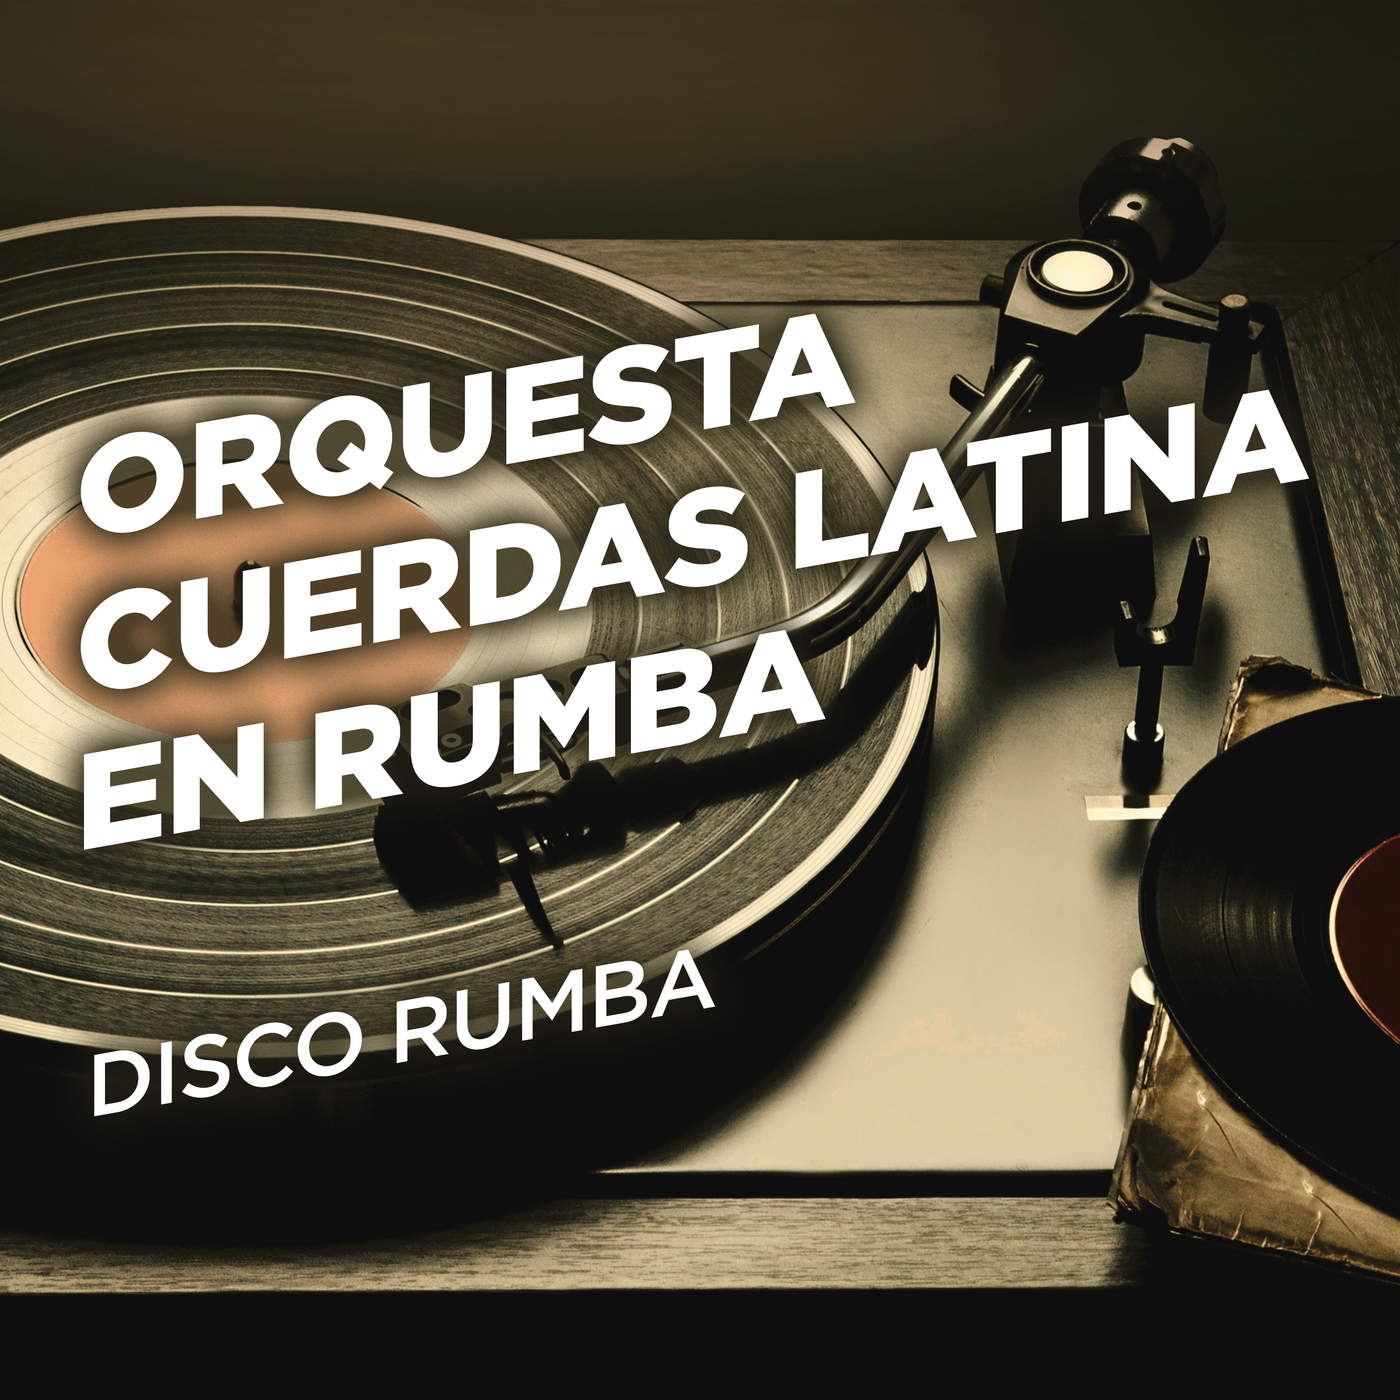 Disco Rumba - Orquesta Cuerdas Latina En Rumba